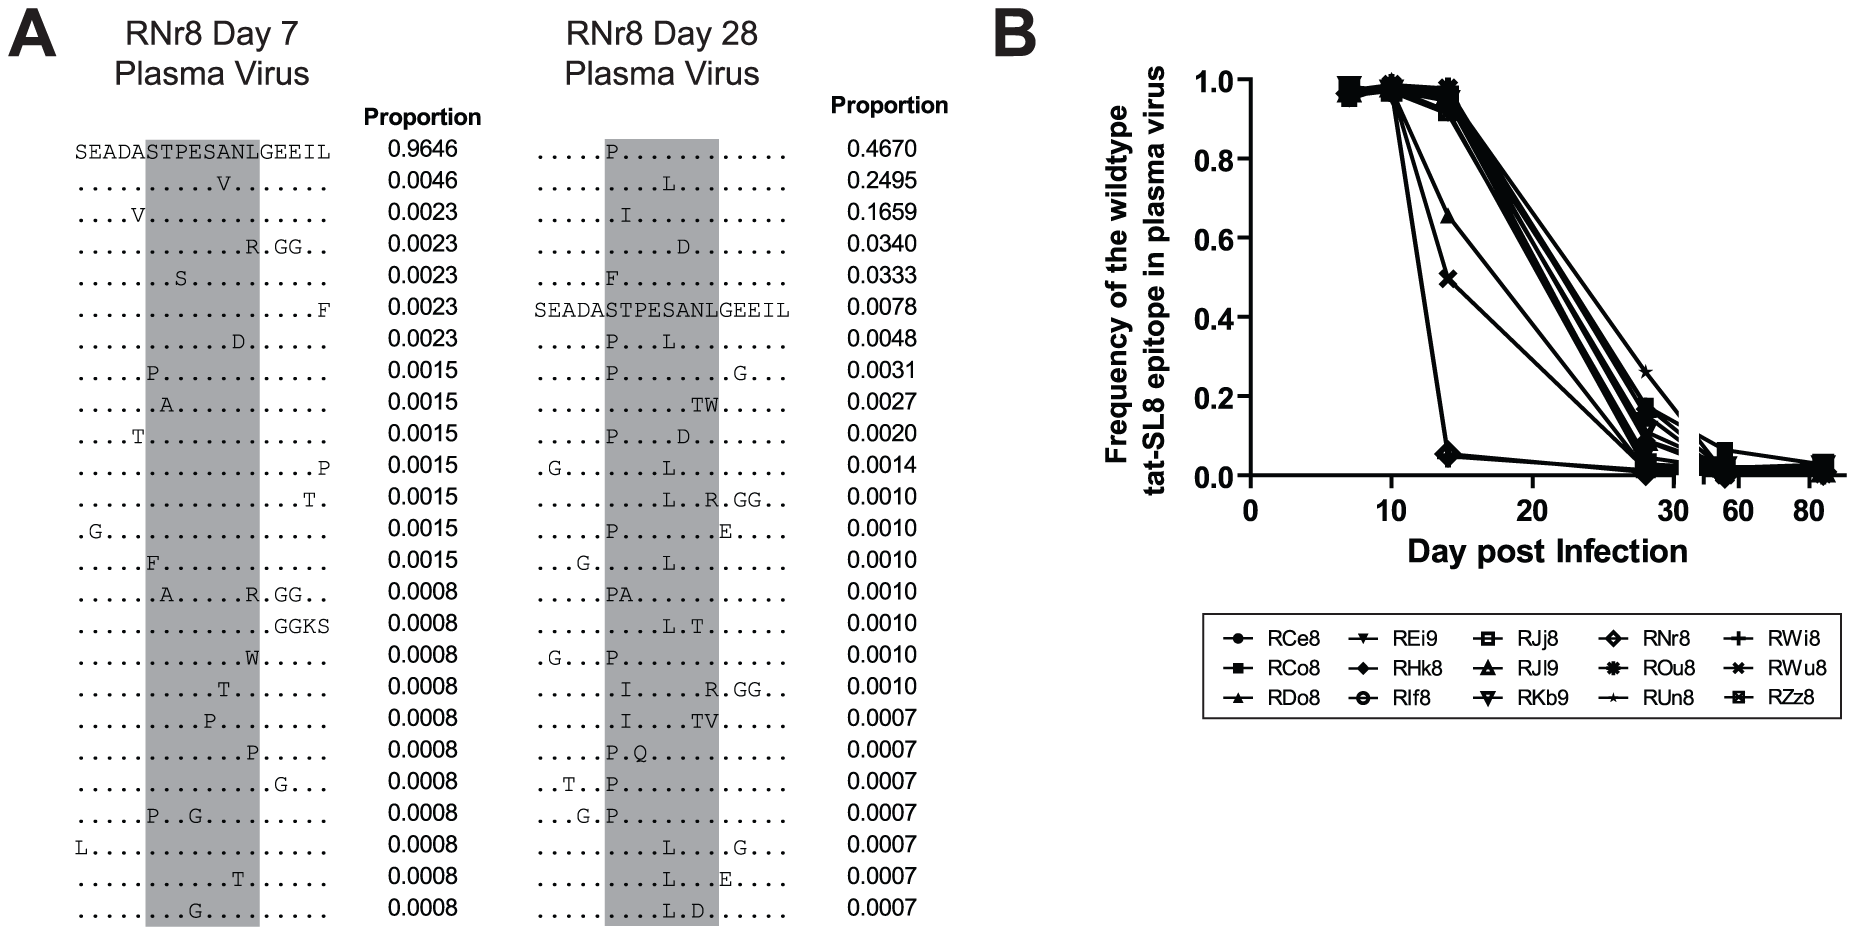 The tat-SL8 MamuA*01-restricted SIVmac239 CD8 T cell epitope escaped rapidly in the plasma virus via multiple amino acid substitutions during the acute phase of infection.